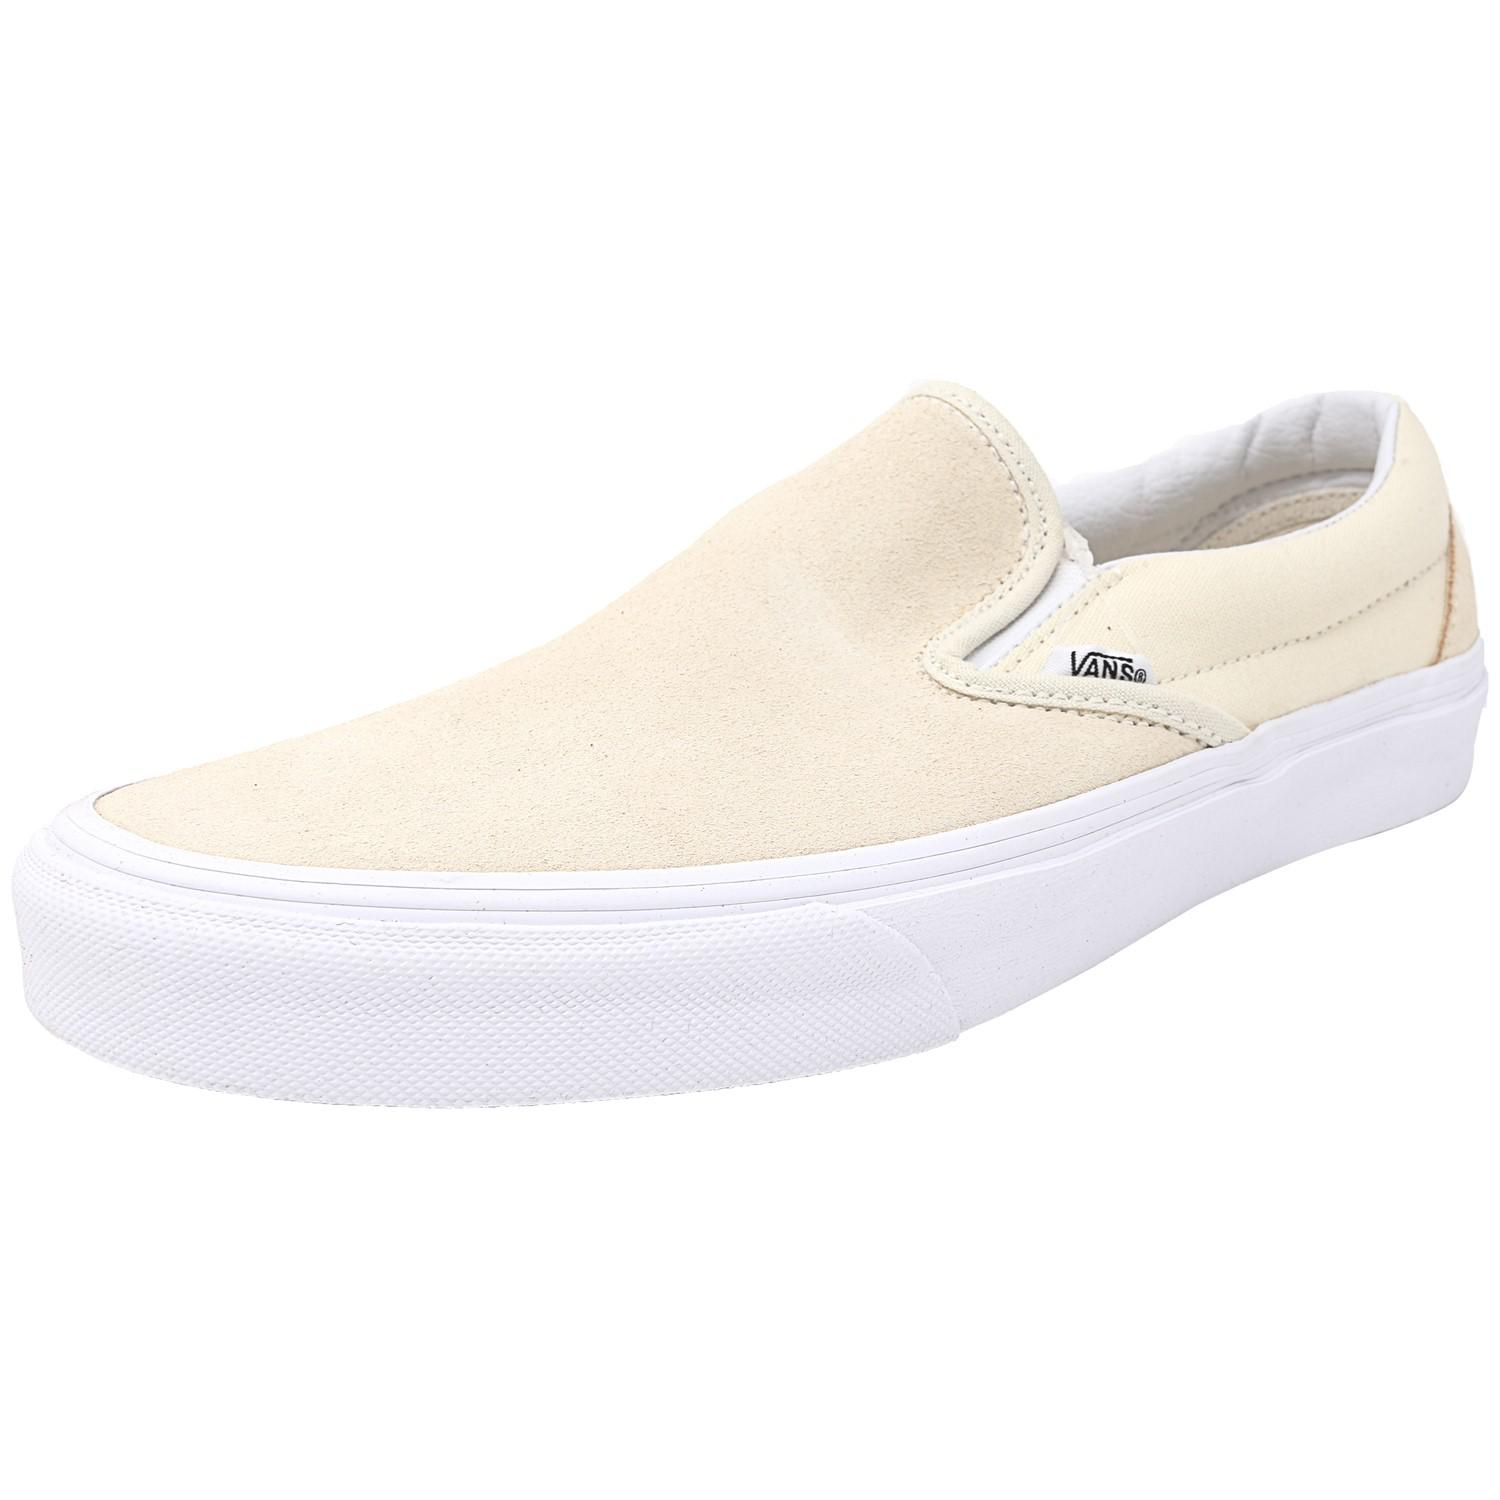 6d5fdd943f Lyst - Vans Classic Slip-on Suede And Canvas Afterglow   True White ...